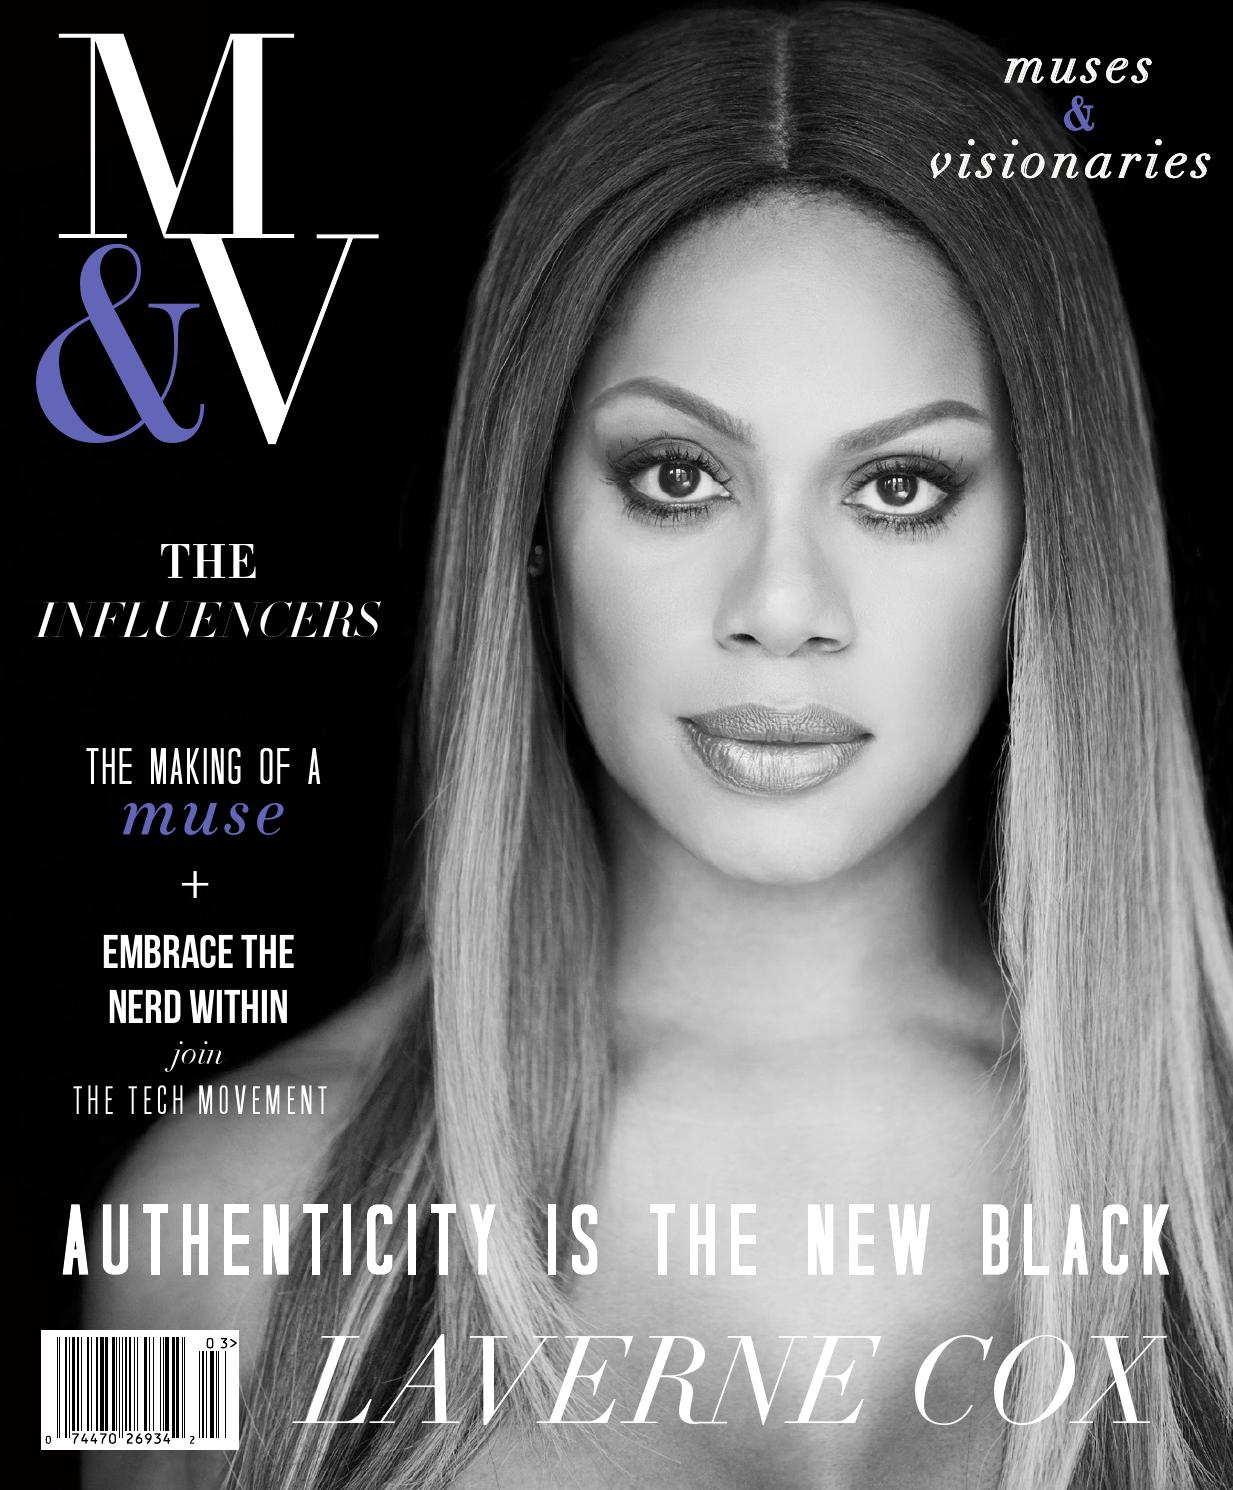 muses visionaries magazine no by muses visionaries magazine muses visionaries magazine no8 by muses visionaries magazine issuu